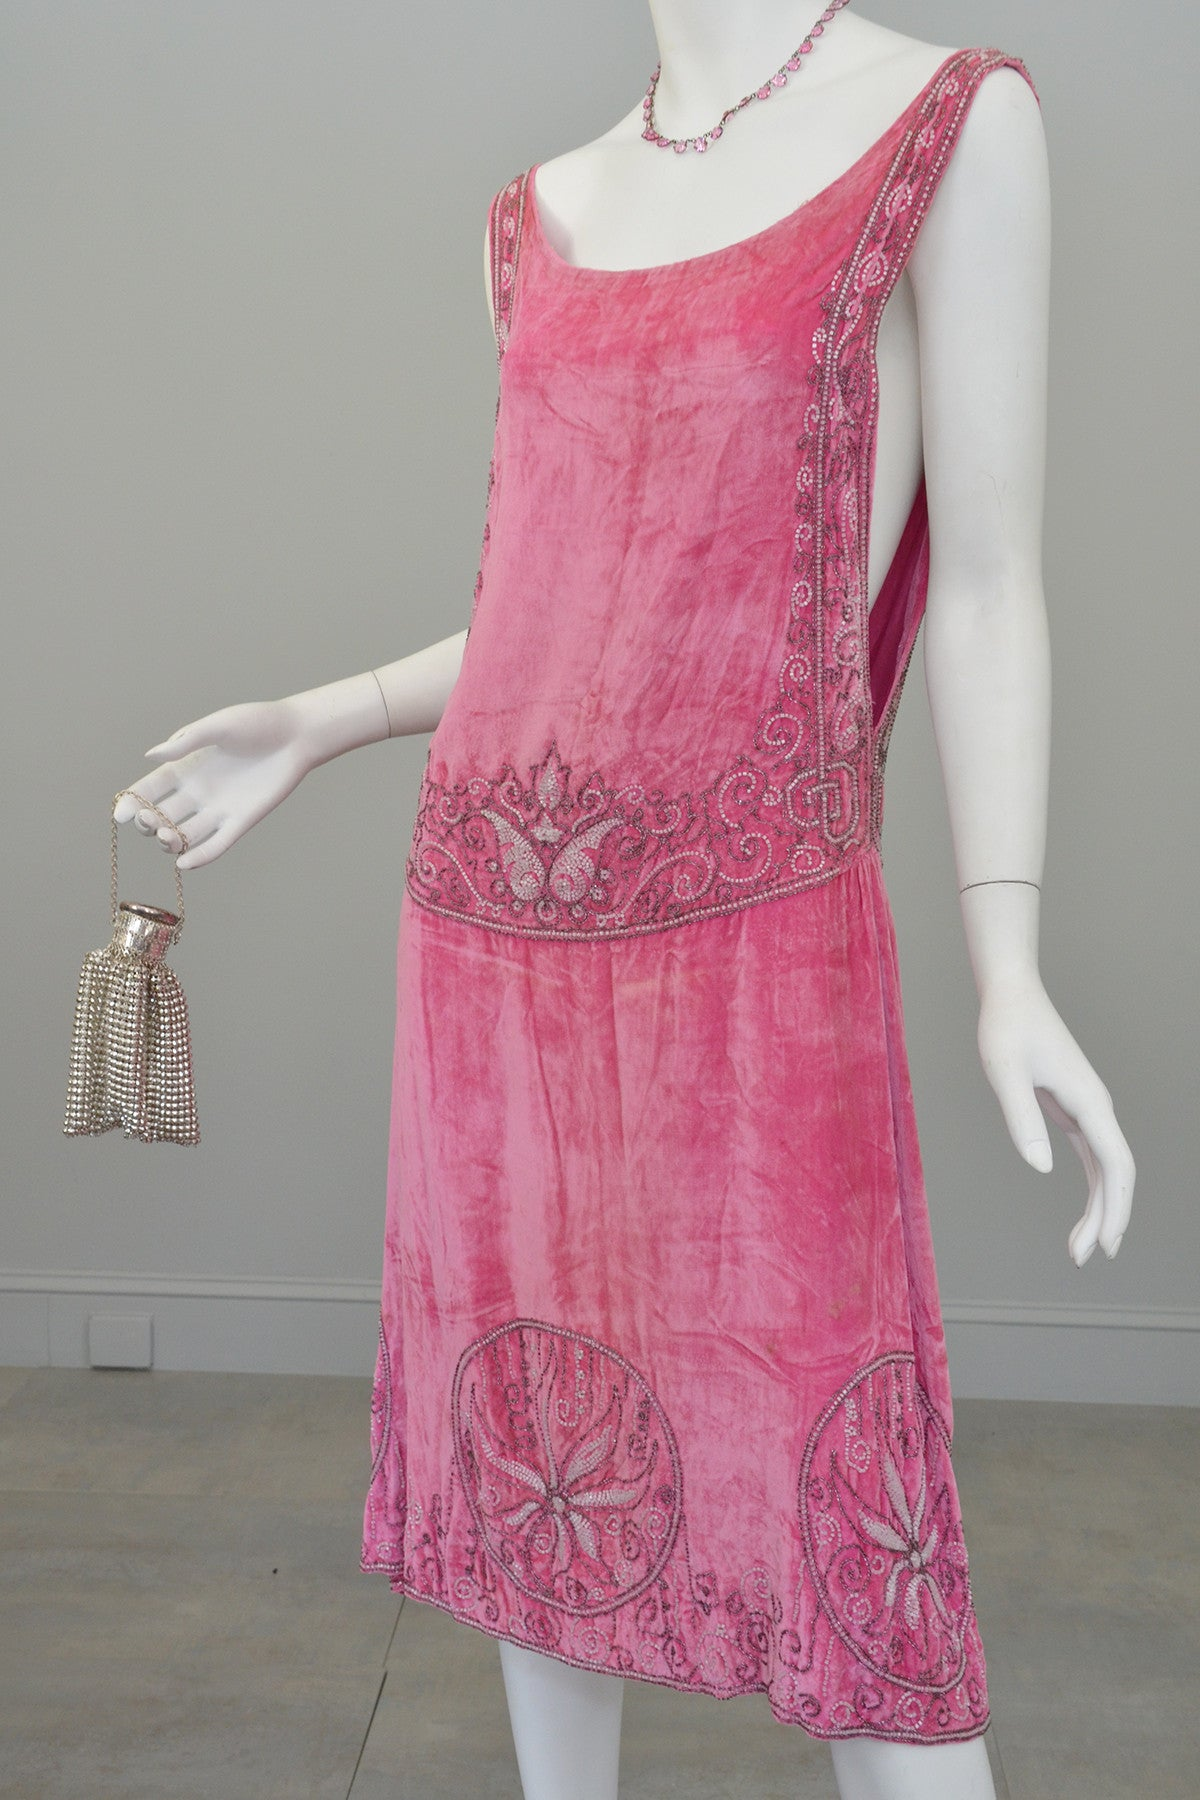 1920s Deco Beaded Flapper Dress and Cut Steel Bag